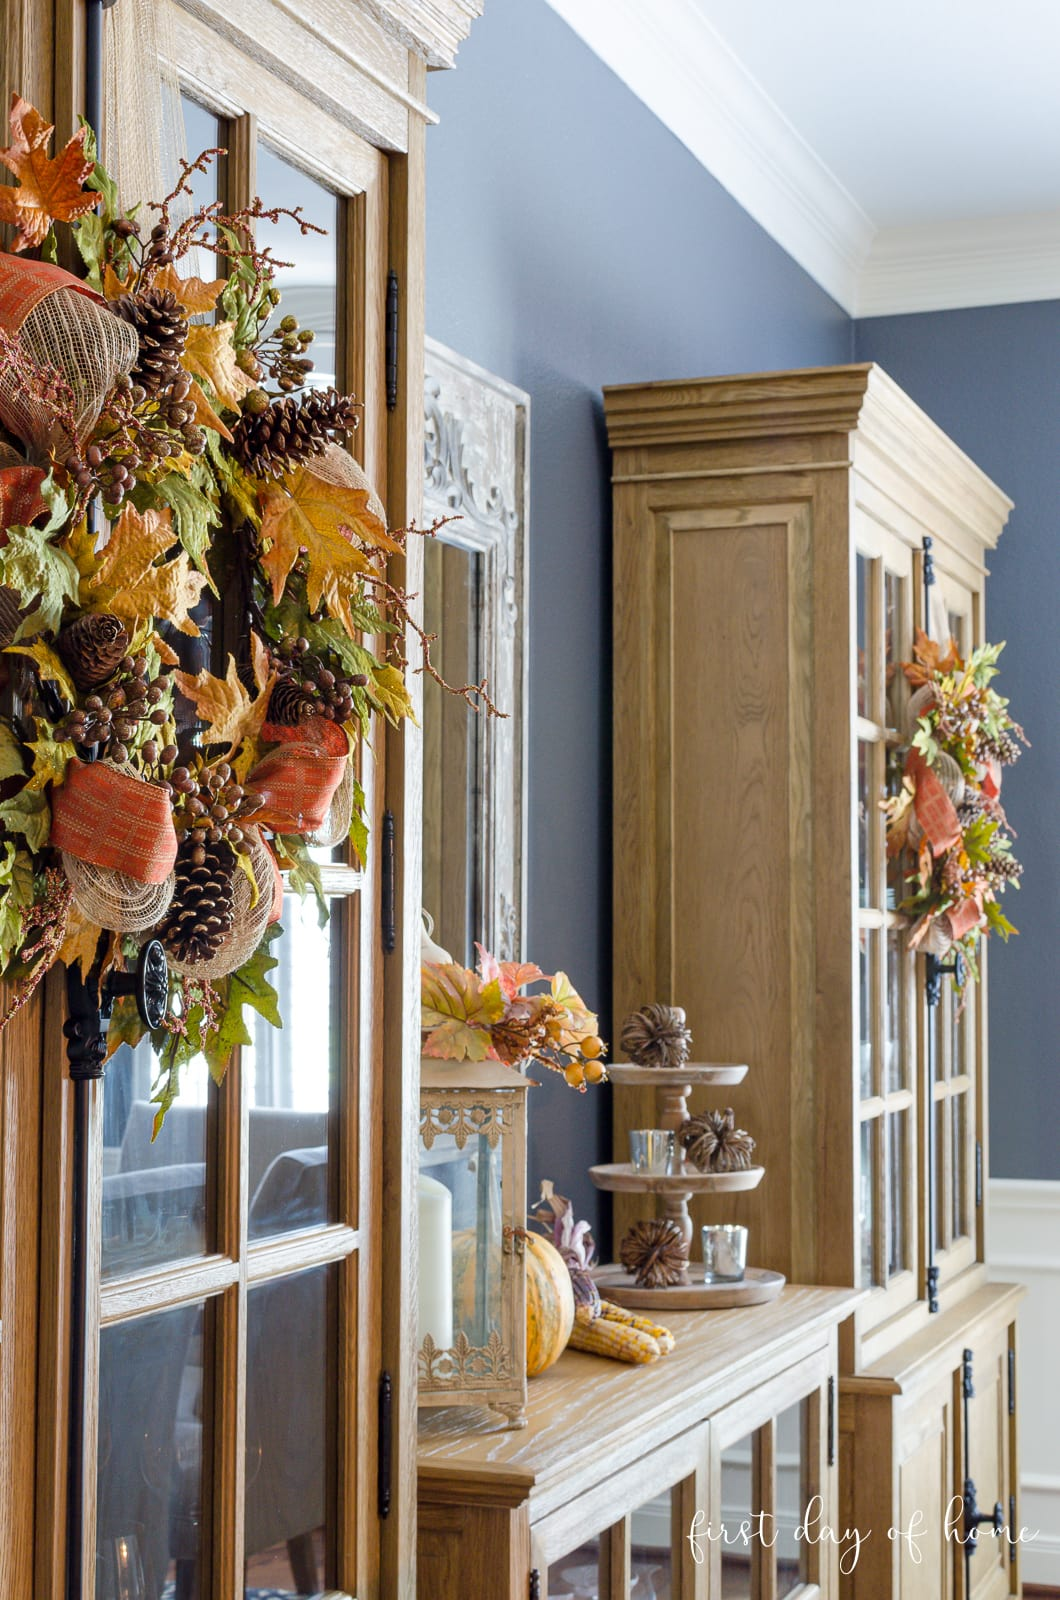 Fall wreaths on matching reclaimed wood cabinets and sideboard